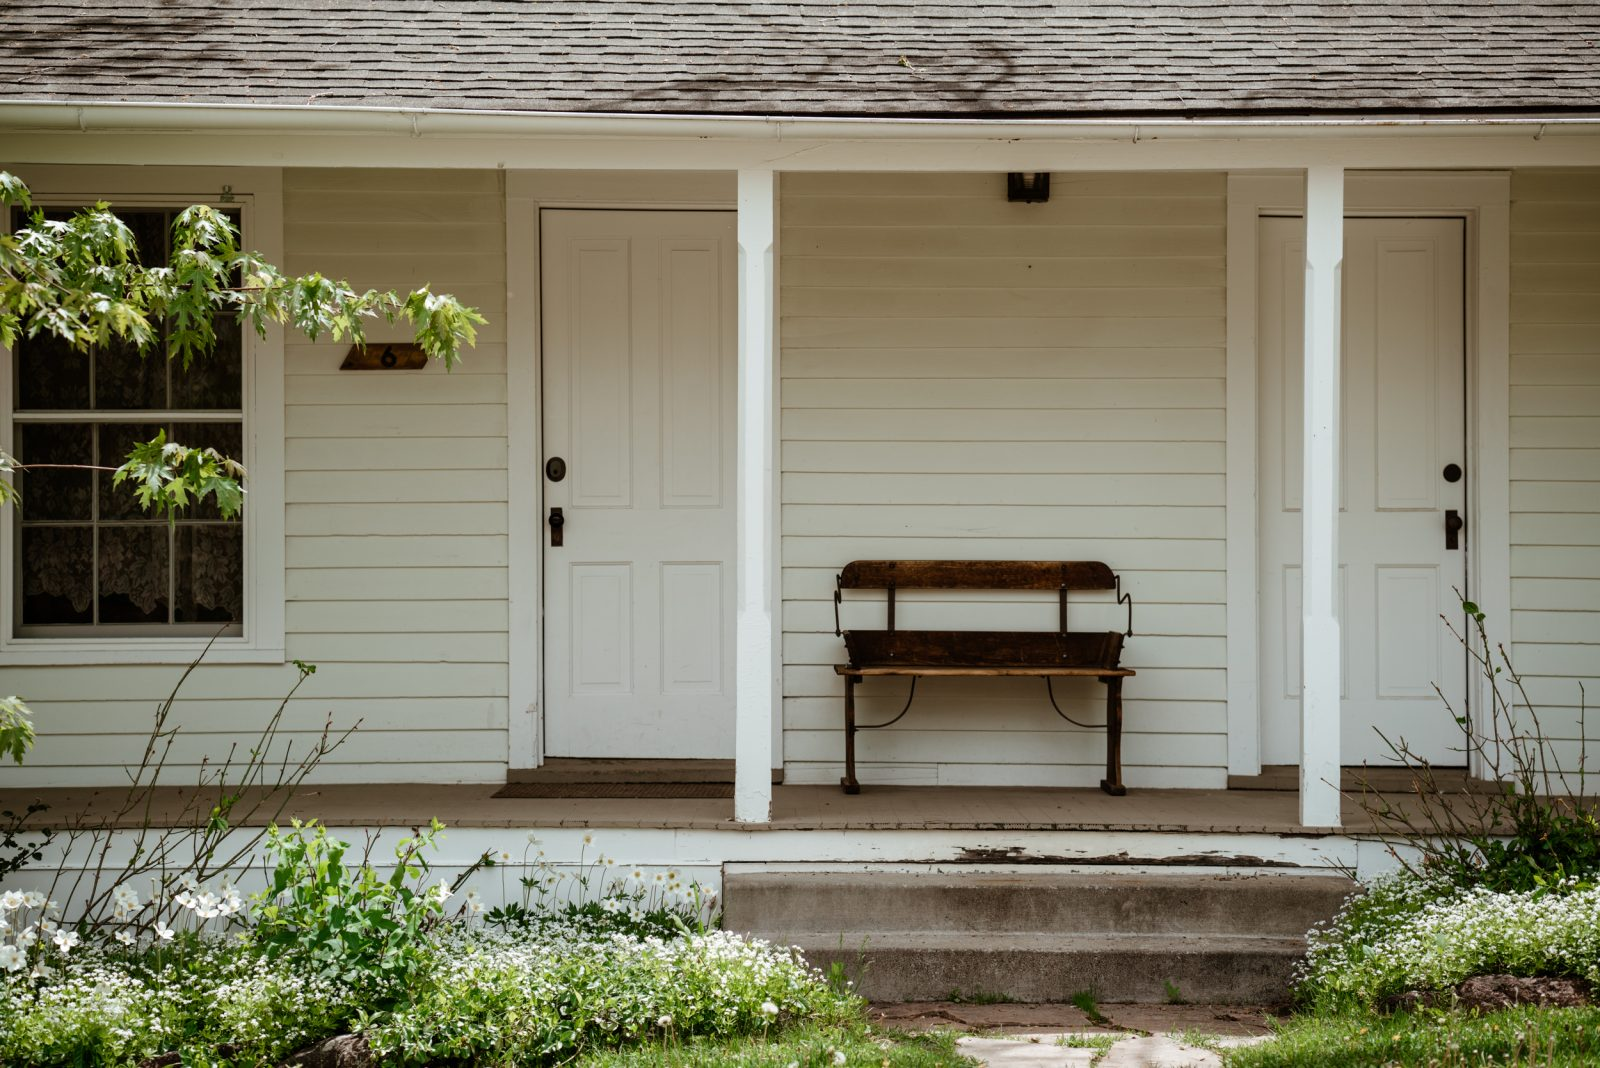 Cottage with bench